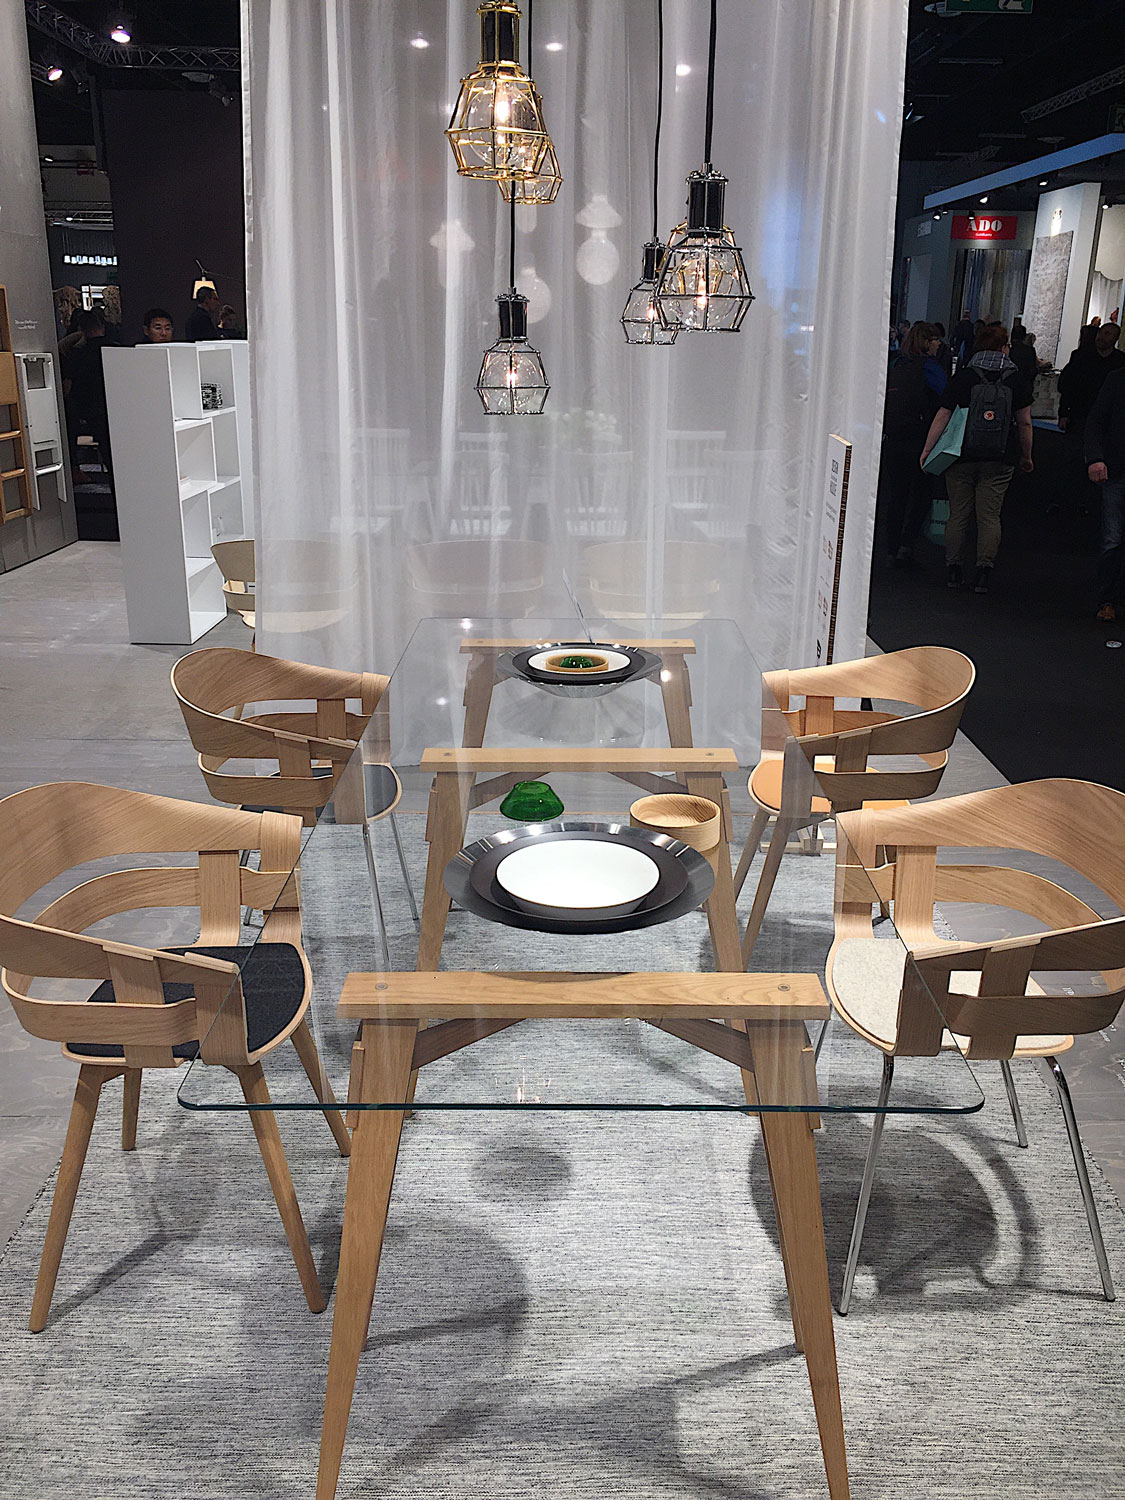 Imm Cologne 2017 trade fair interior trends wood chairs table